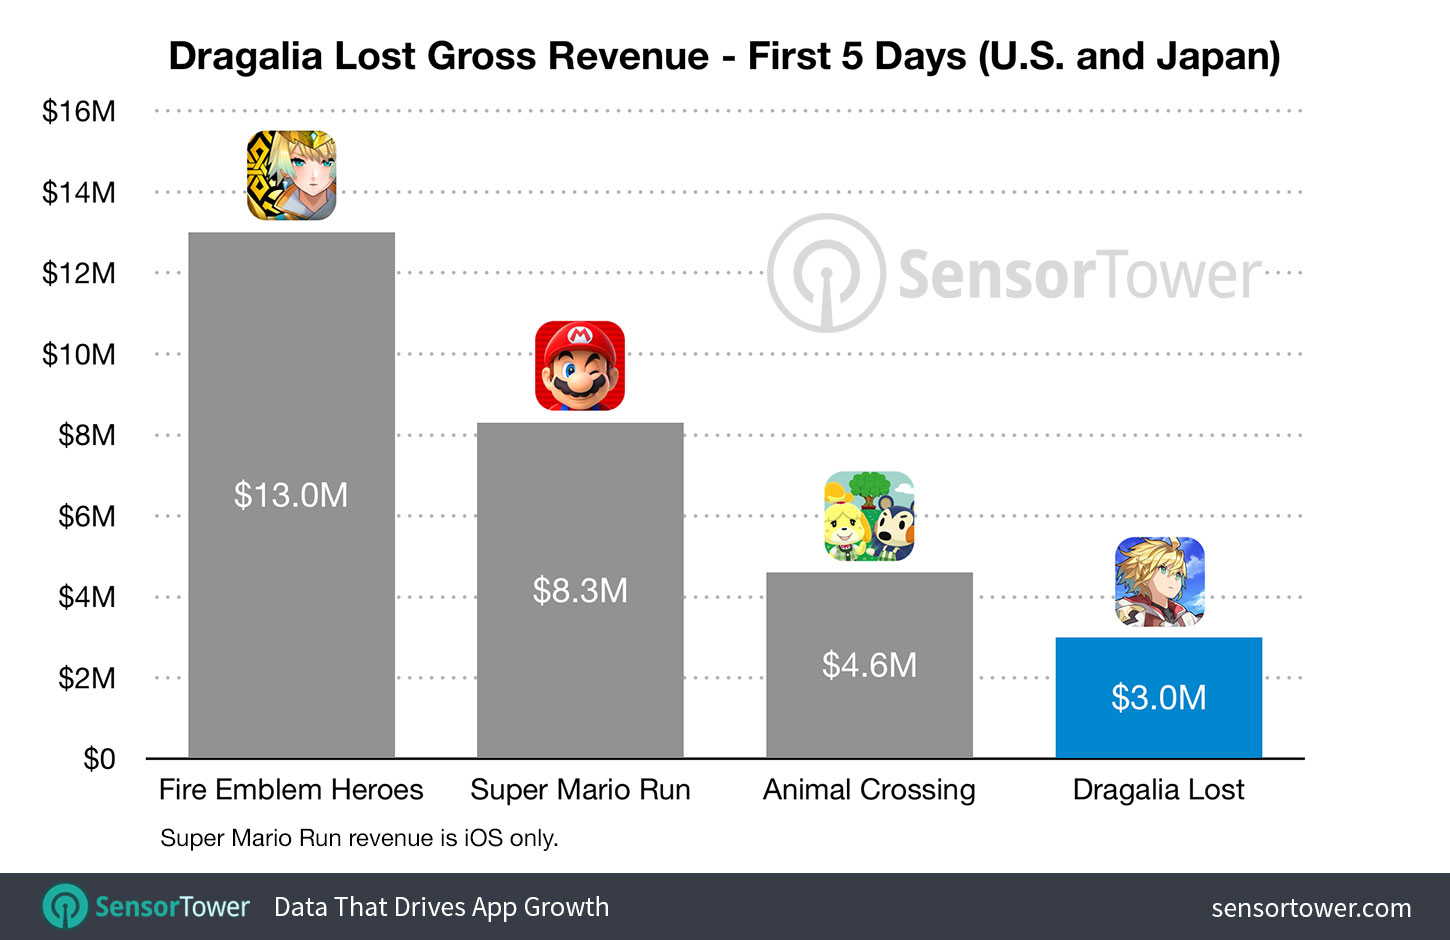 Dragalia Lost Revenue First 5 Days